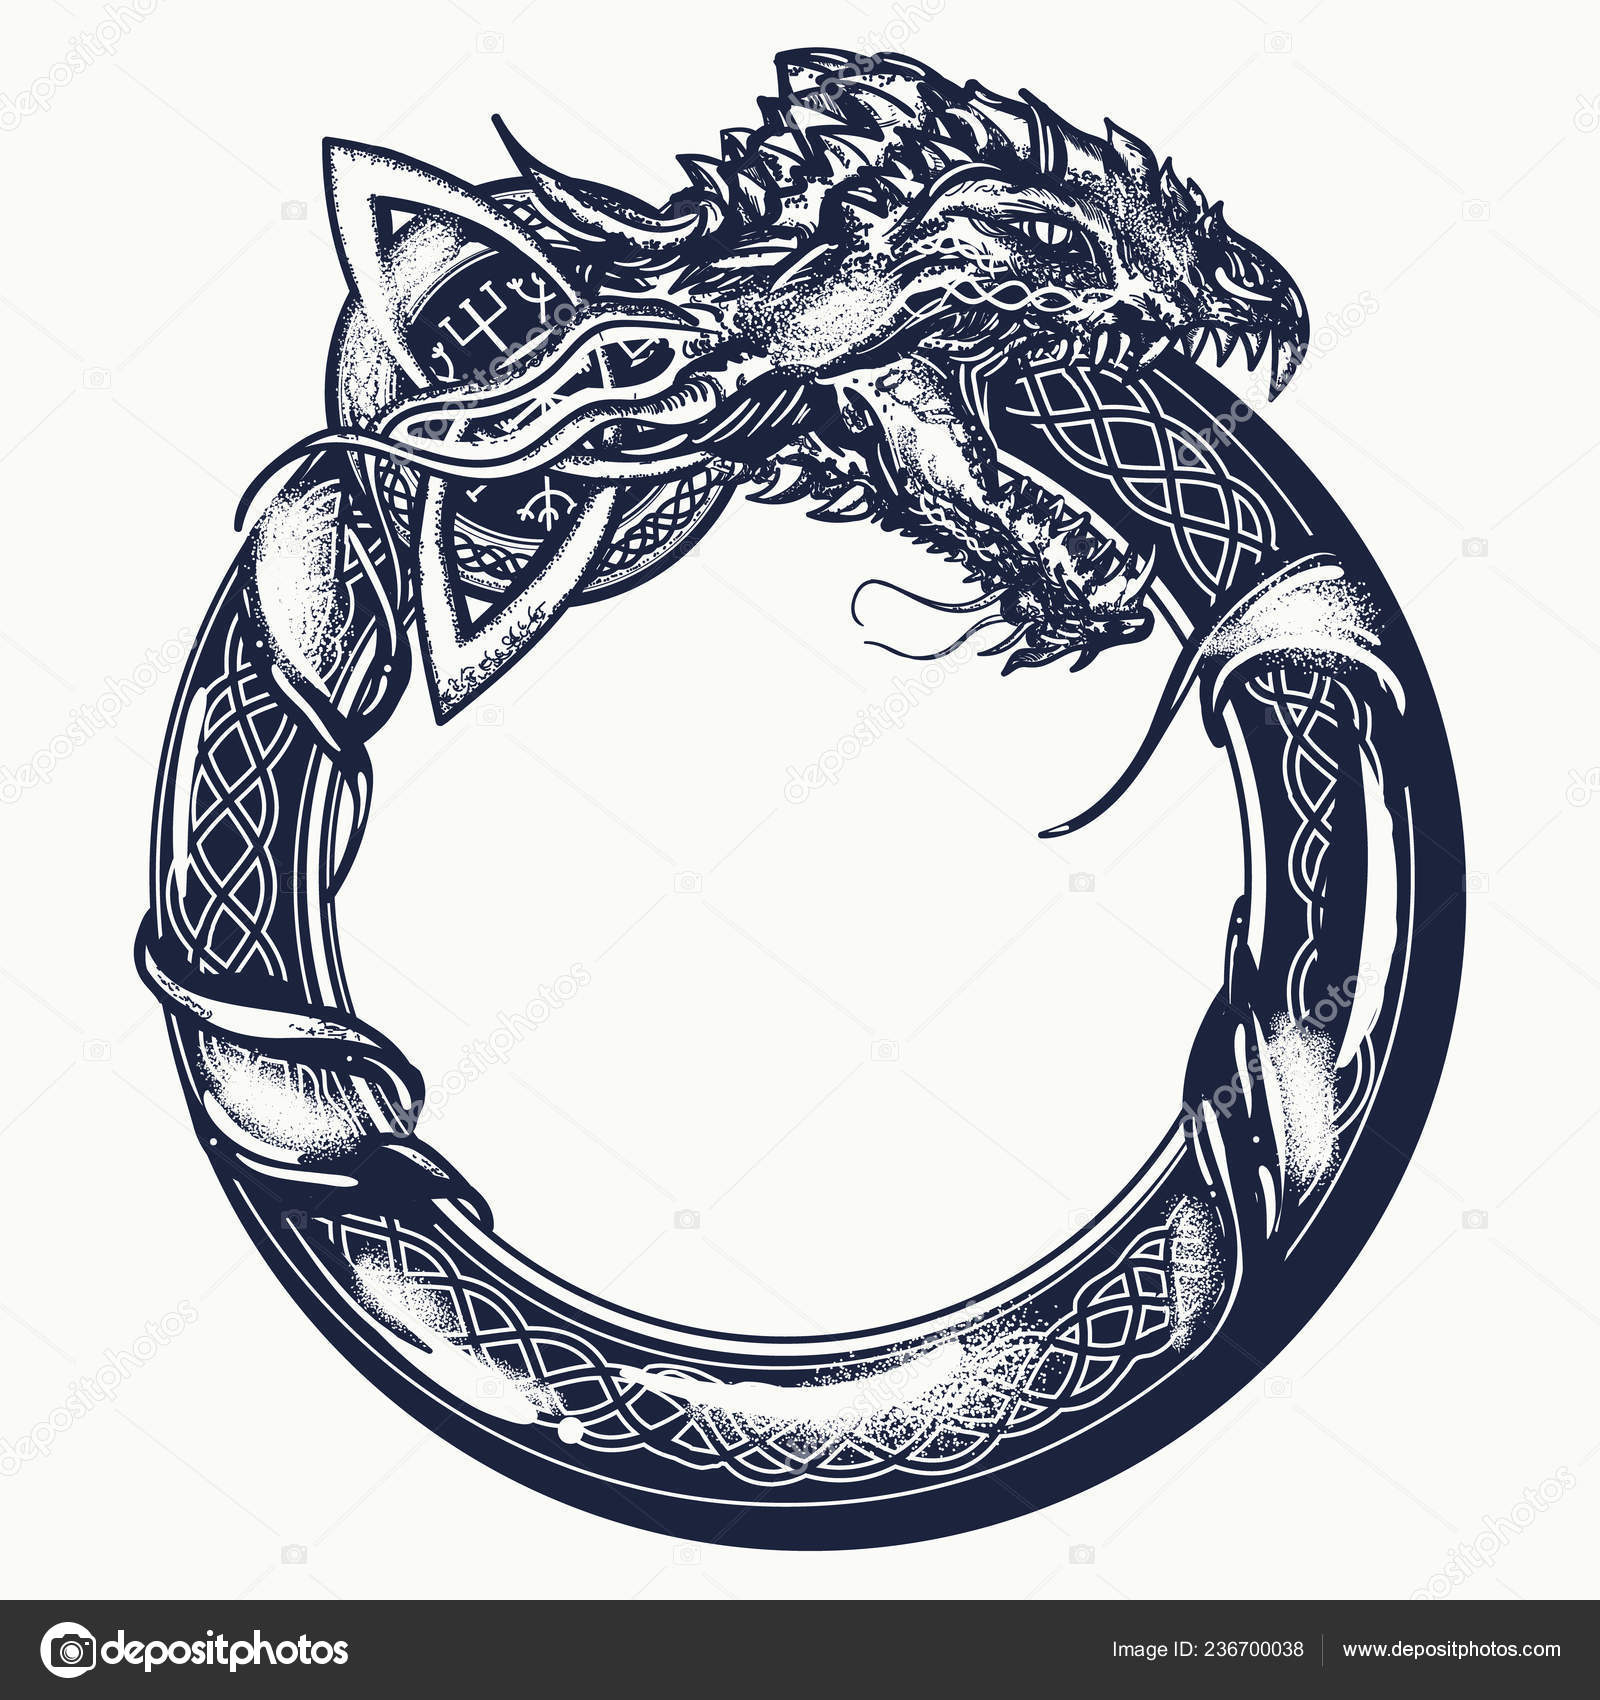 Ouroboros Tattoo Celtic Dragon Eating Its Own Tail Medieval